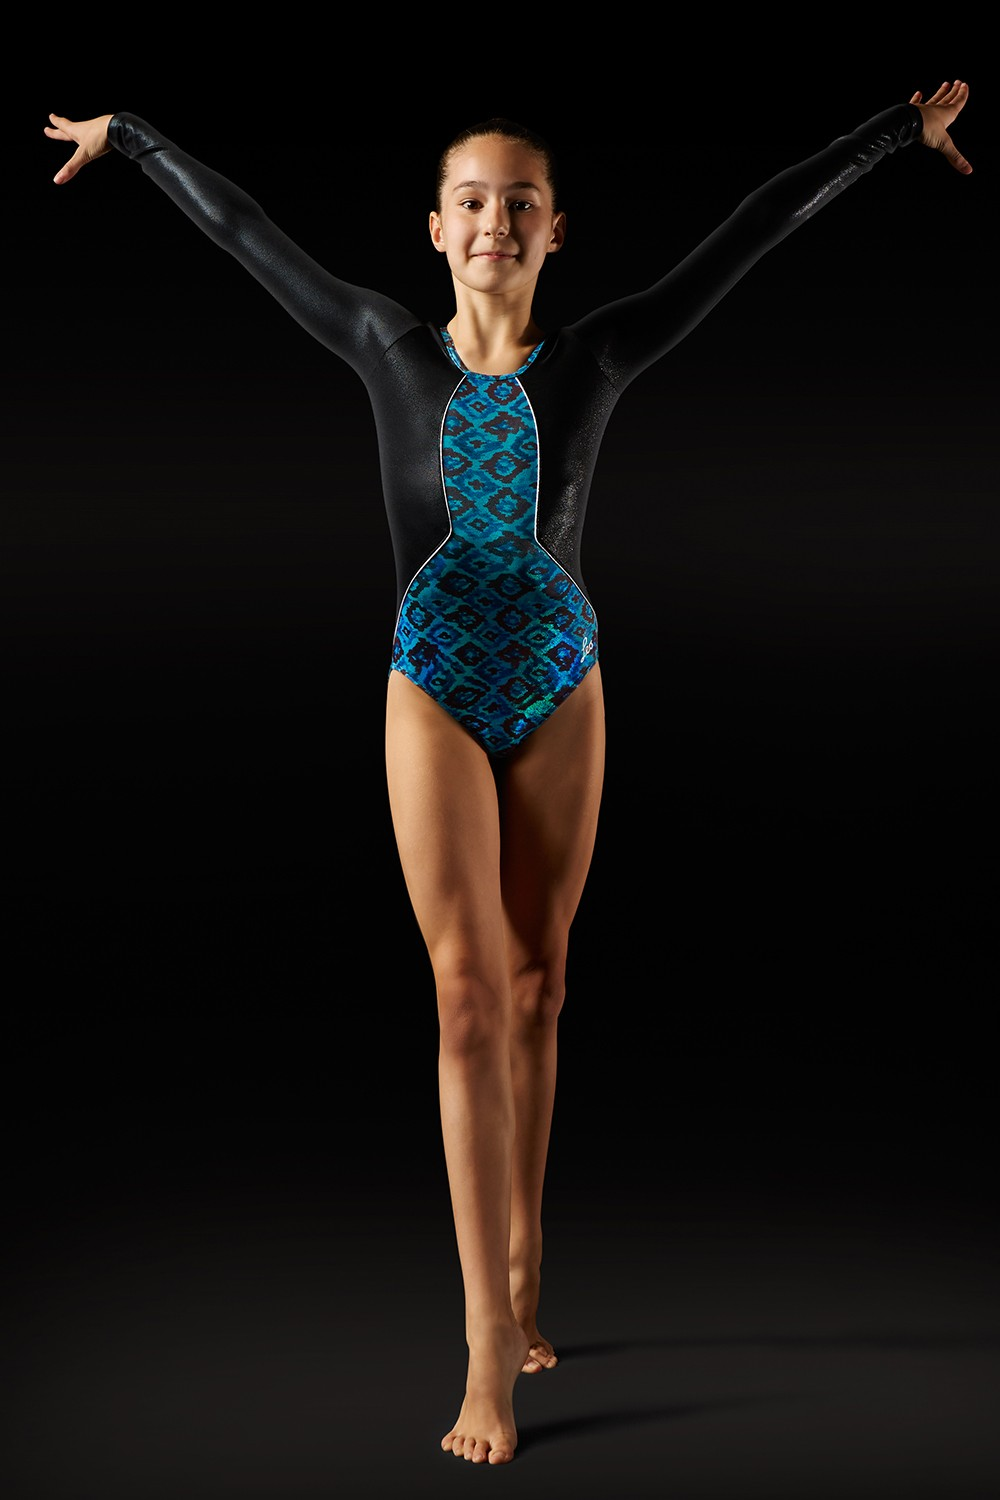 Body De Manga Comprida Em Estampado Aztec Women's Gymnastics Leotards